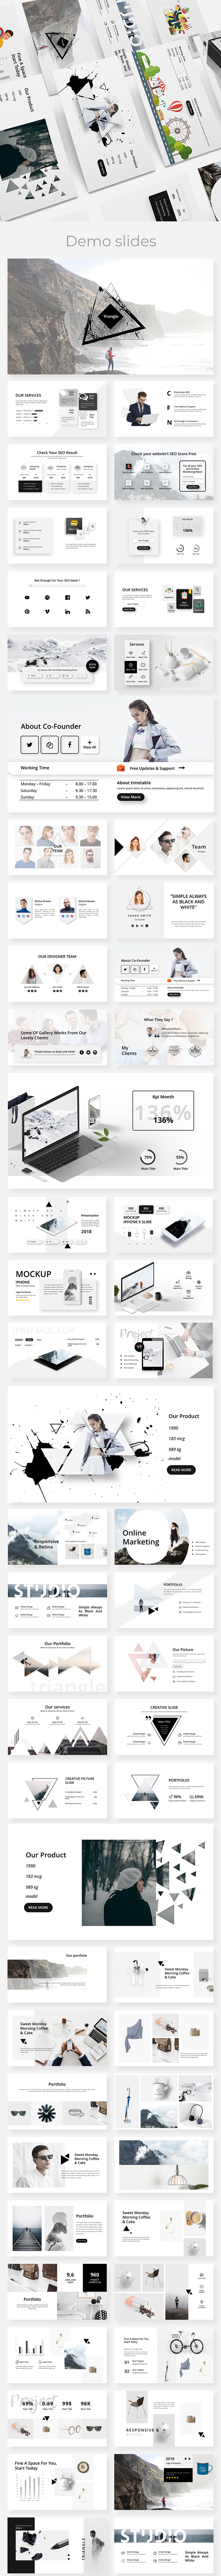 Triangle Creative Google Slide Template - Google Slides Presentation Templates